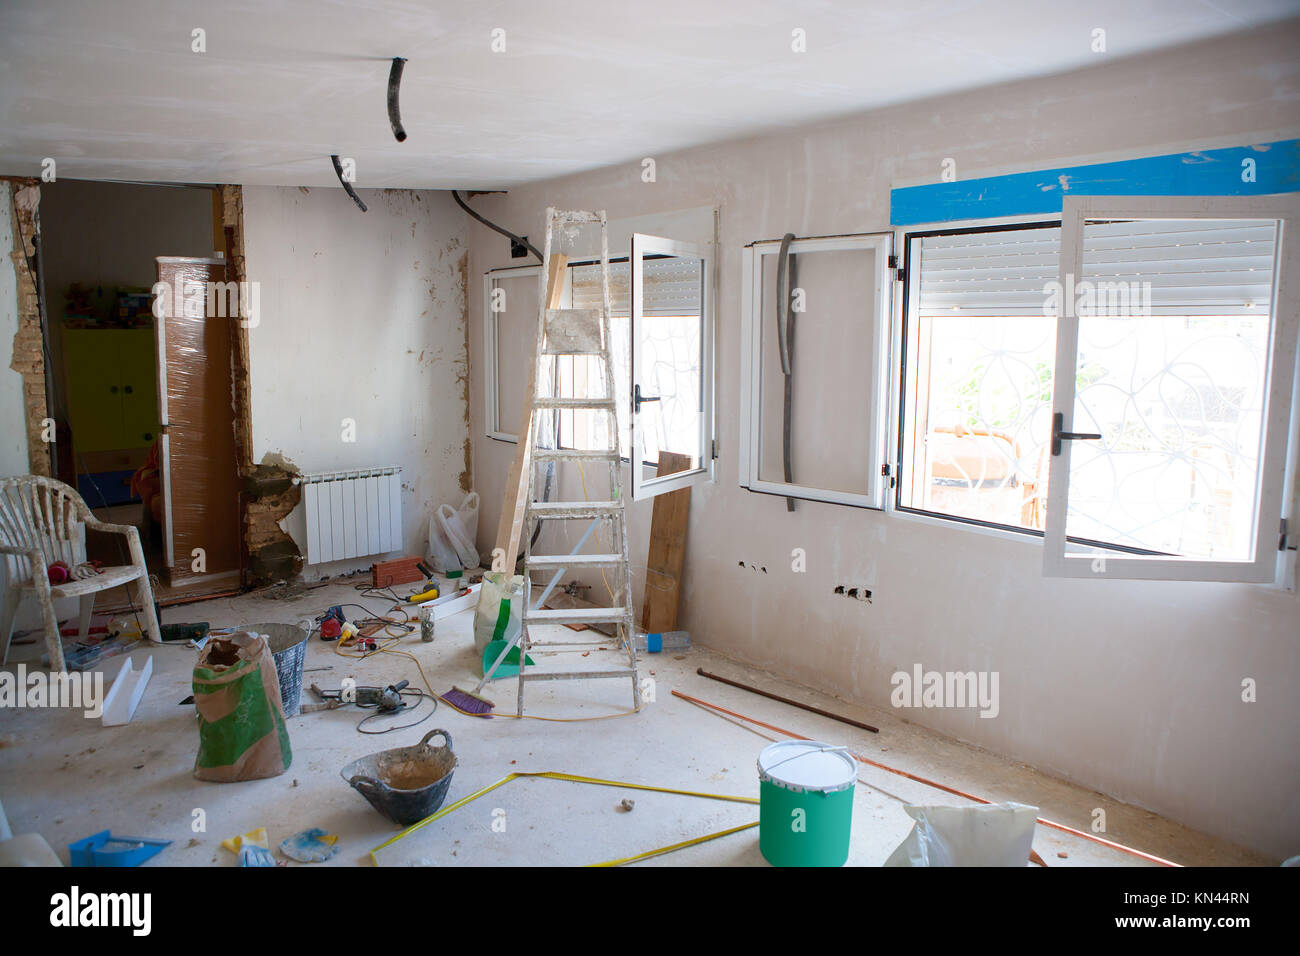 House indoor improvements in a messy room construction with plaste tools and ladder. - Stock Image